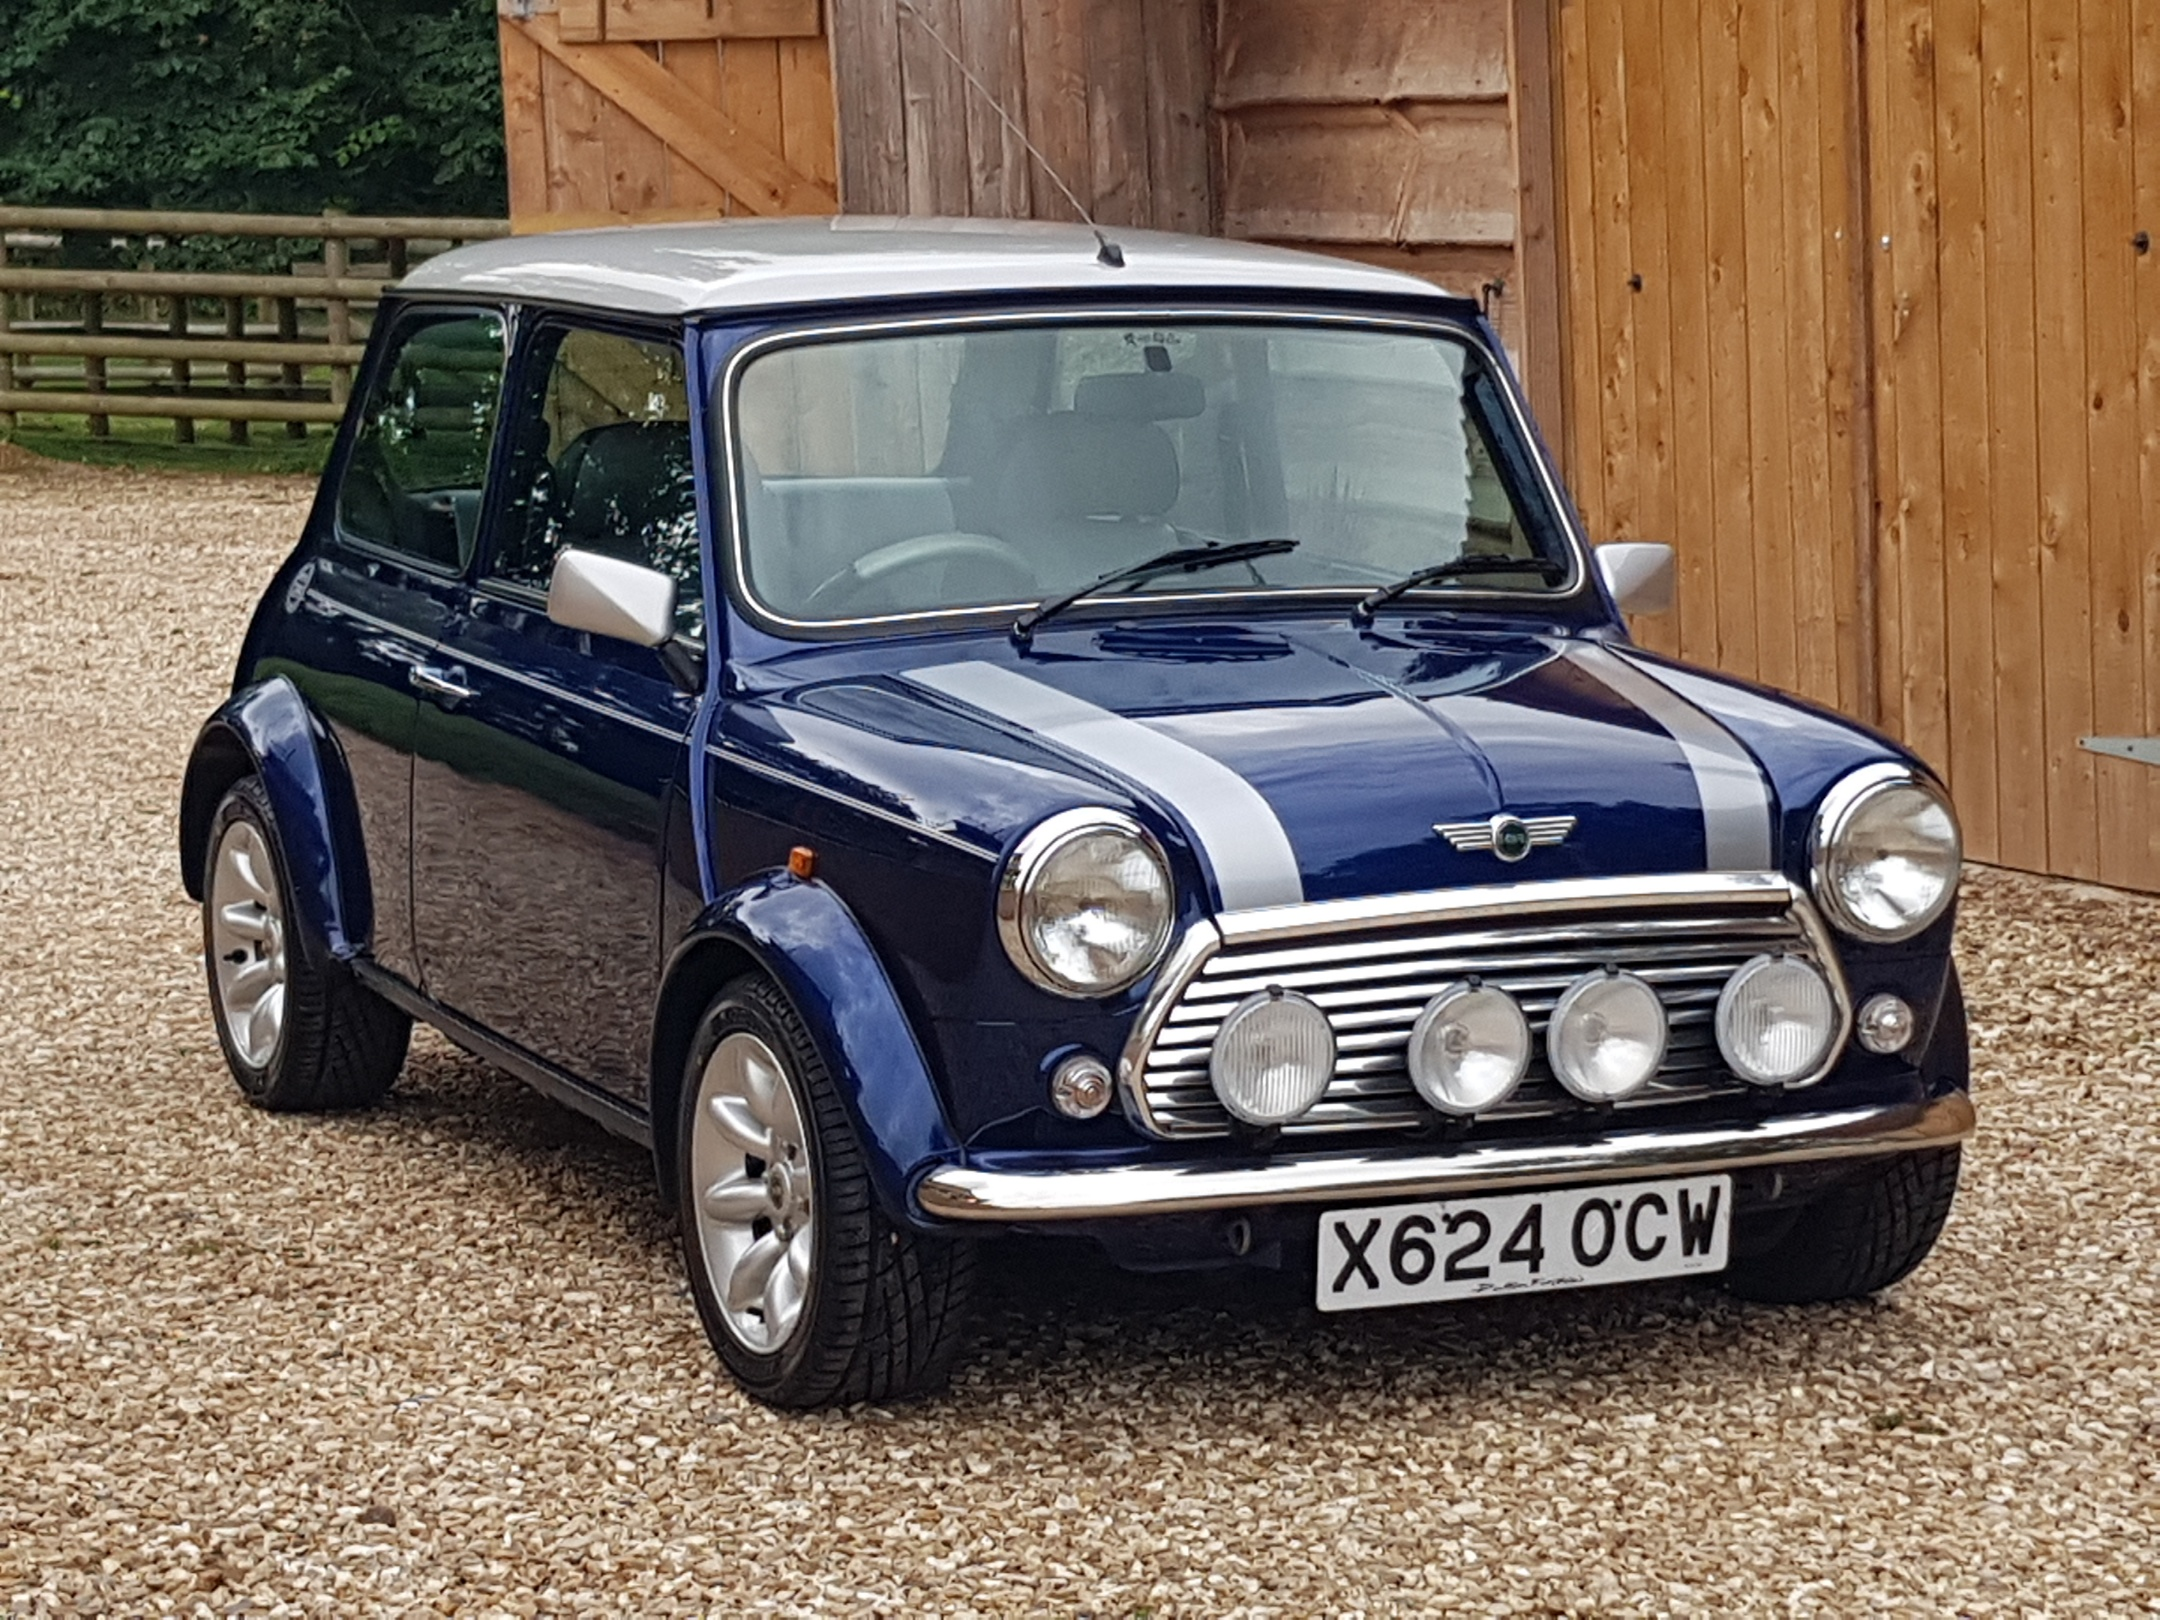 ** DEPOSIT PAID ** 2000 Mini Cooper Sport On Just 8150 Miles From New!